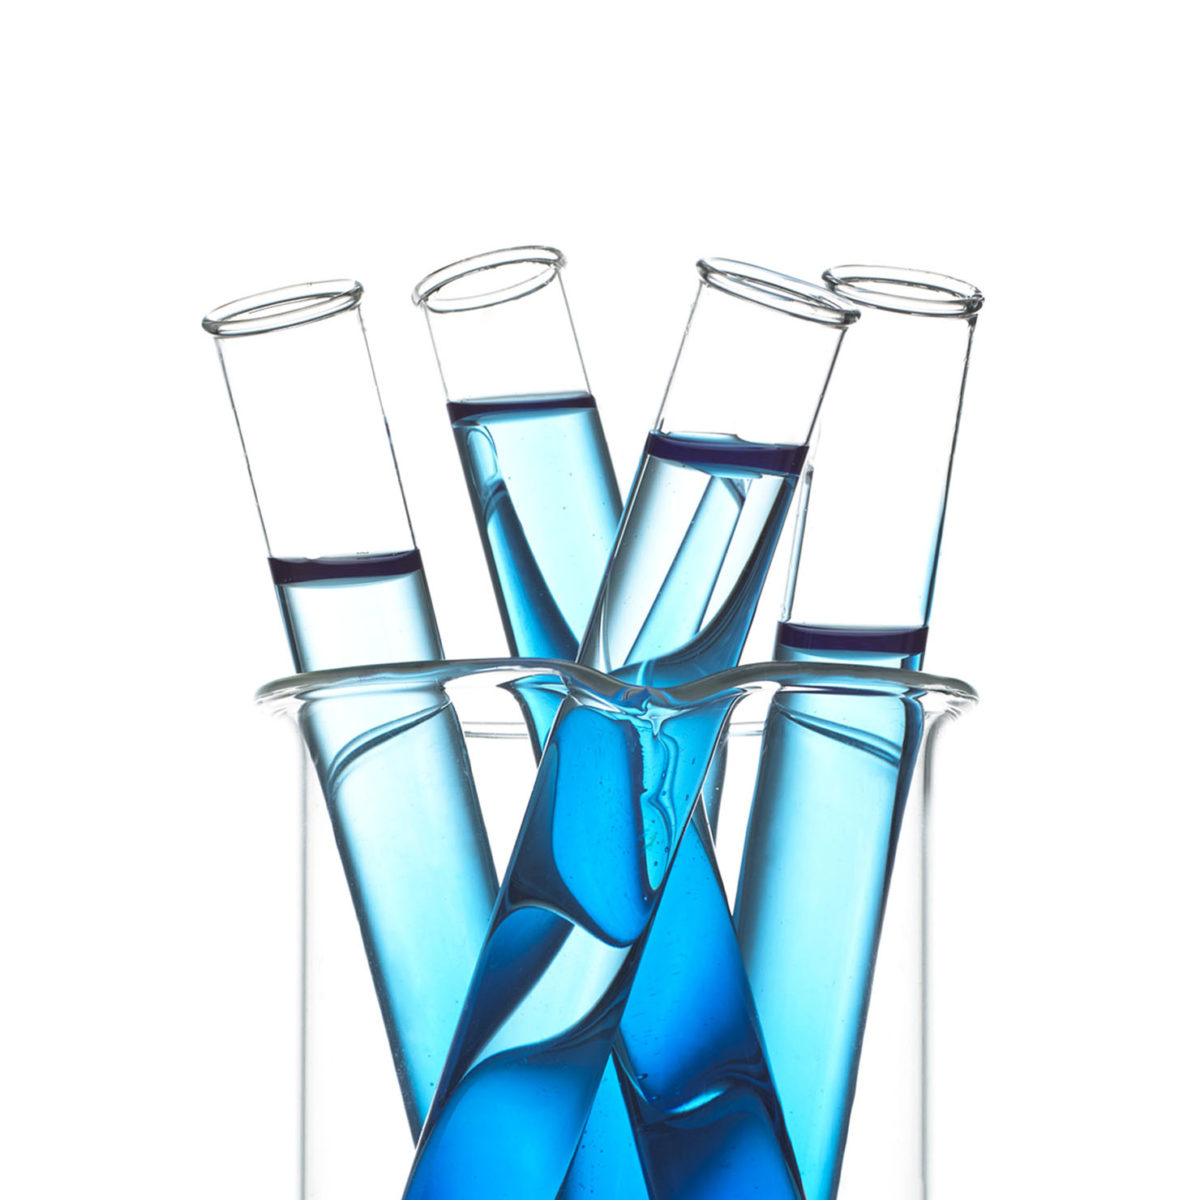 Four test tubes filled with blue liquid.